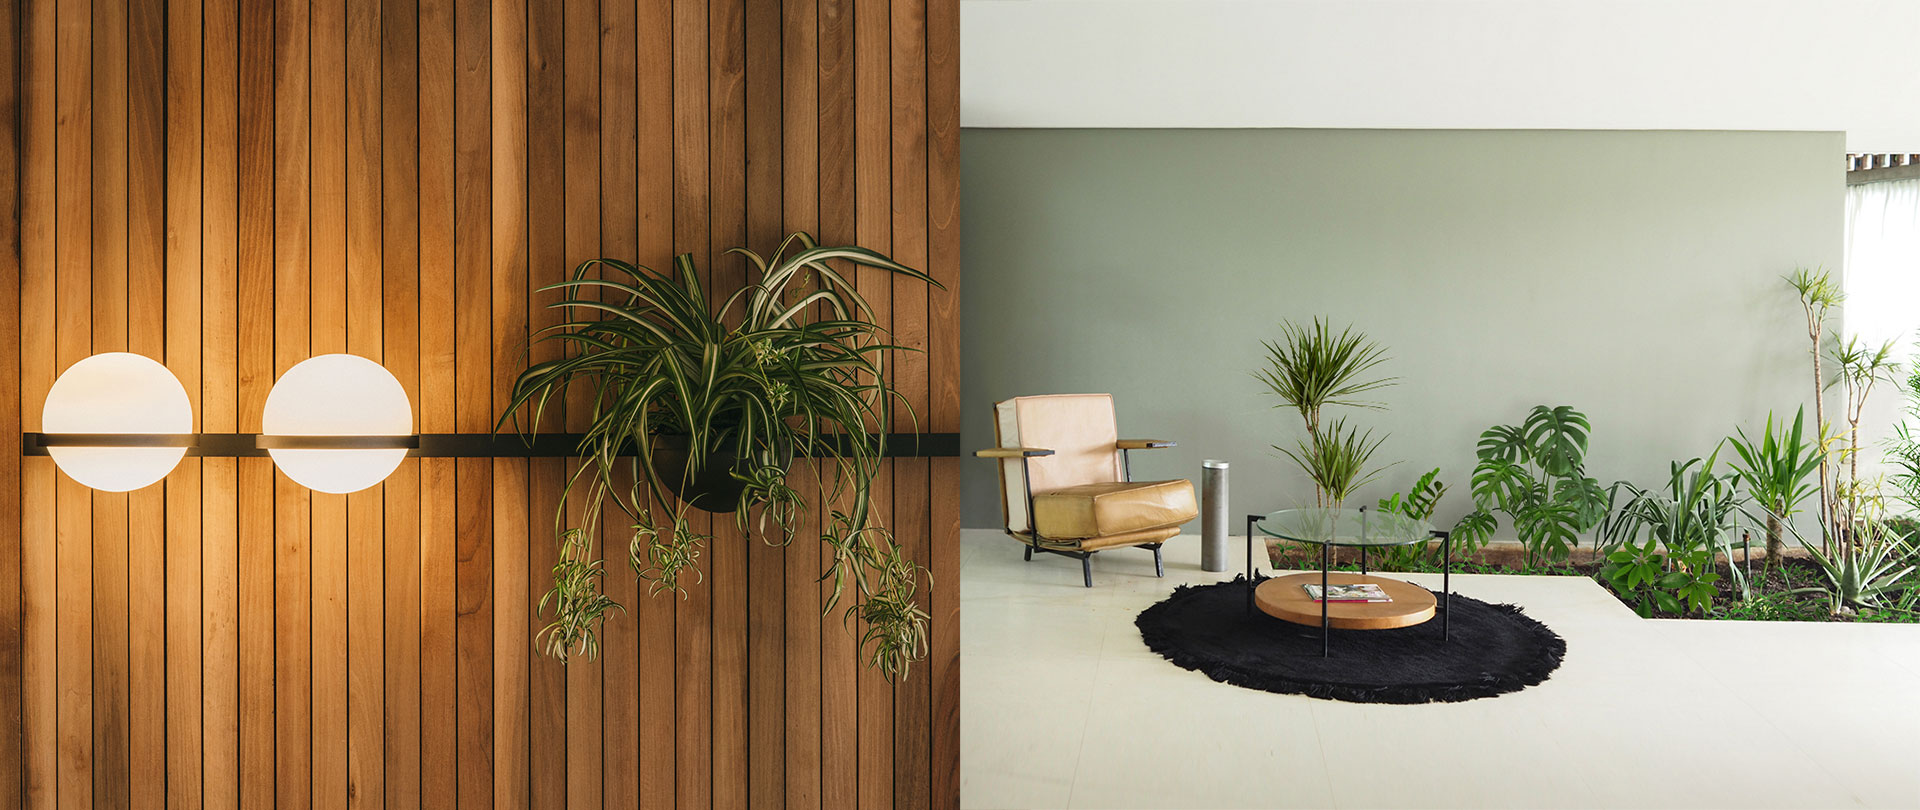 Vibia The Edit - Design Concept - Bringing the outdoors in - Palma